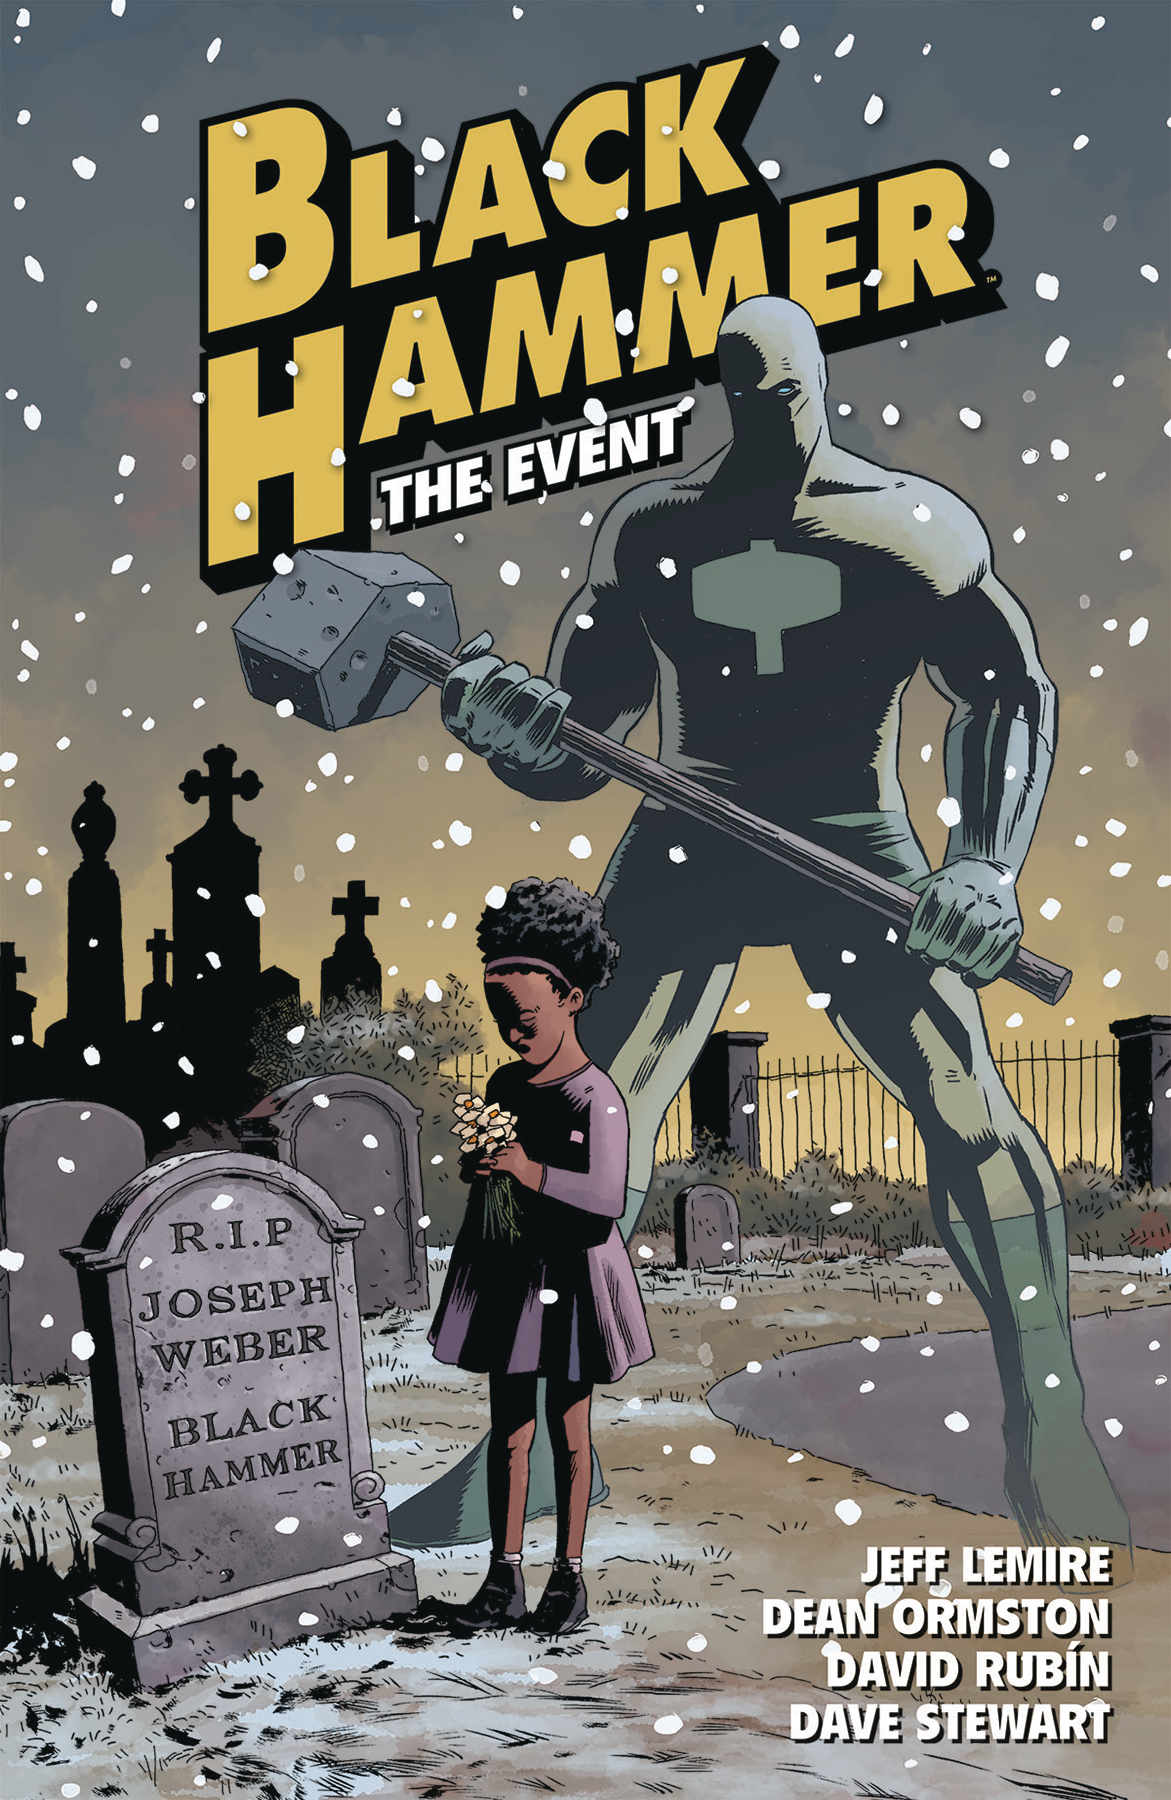 BLACK HAMMER TP VOL 02 THE EVENT (AUG170013)